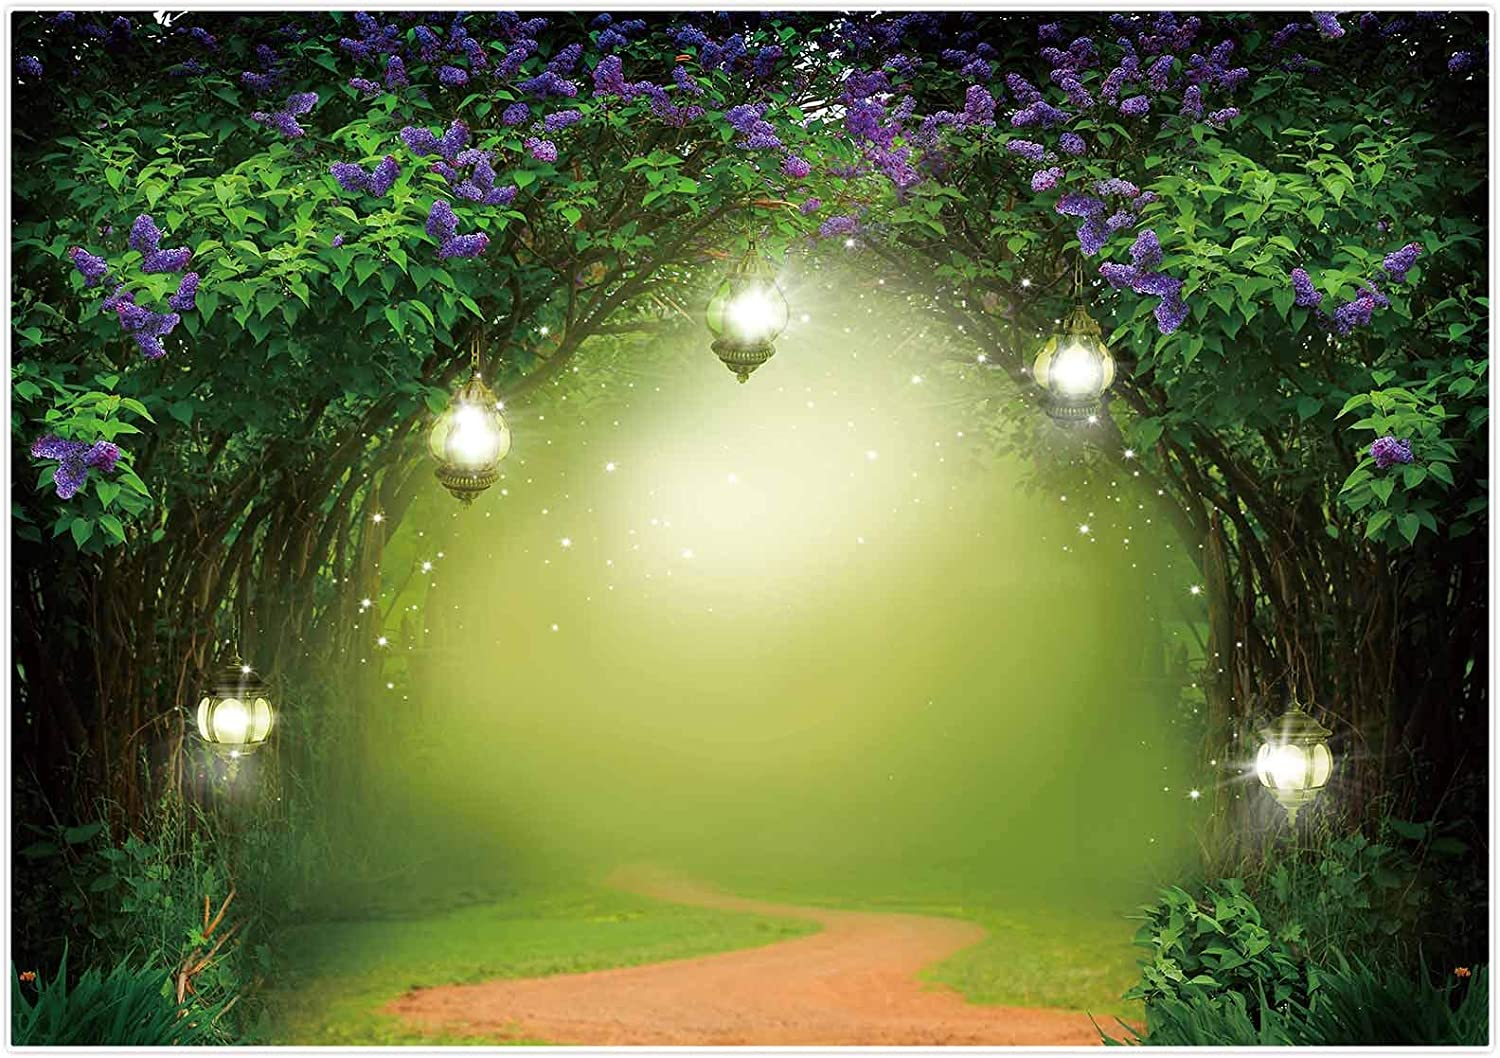 Allenjoy 7x5ft Spring Enchanted Forest Photography Backdrop Magic Garden Fairy Tale Wonderland Background for Girls Princess Baby Shower Happy Birthday Party Decor Banner Portrait Photo Booth Props